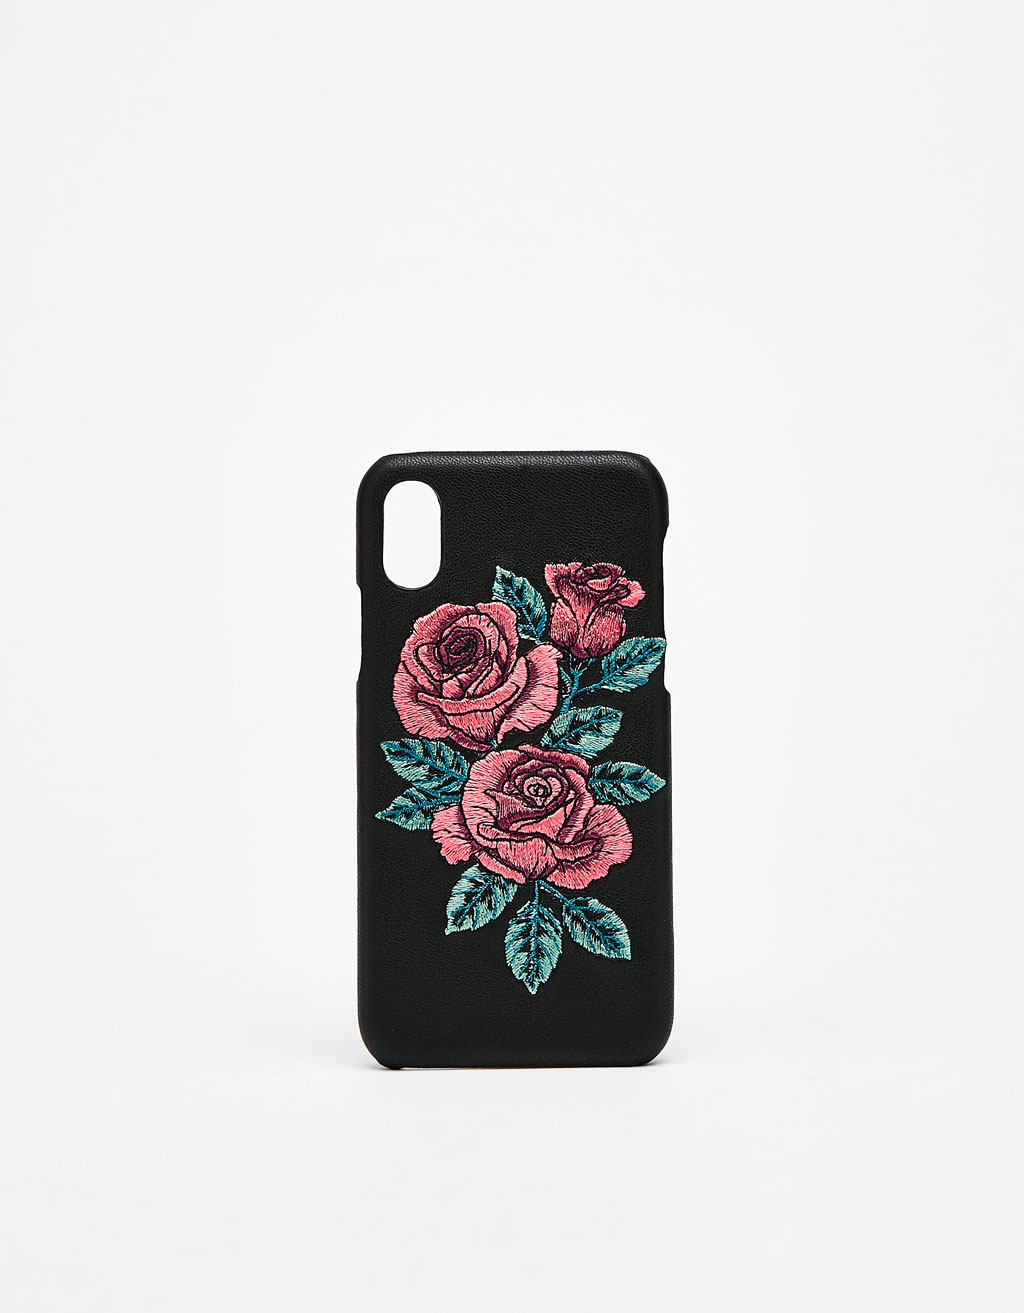 Carcasa con bordado de rosas iPhone X